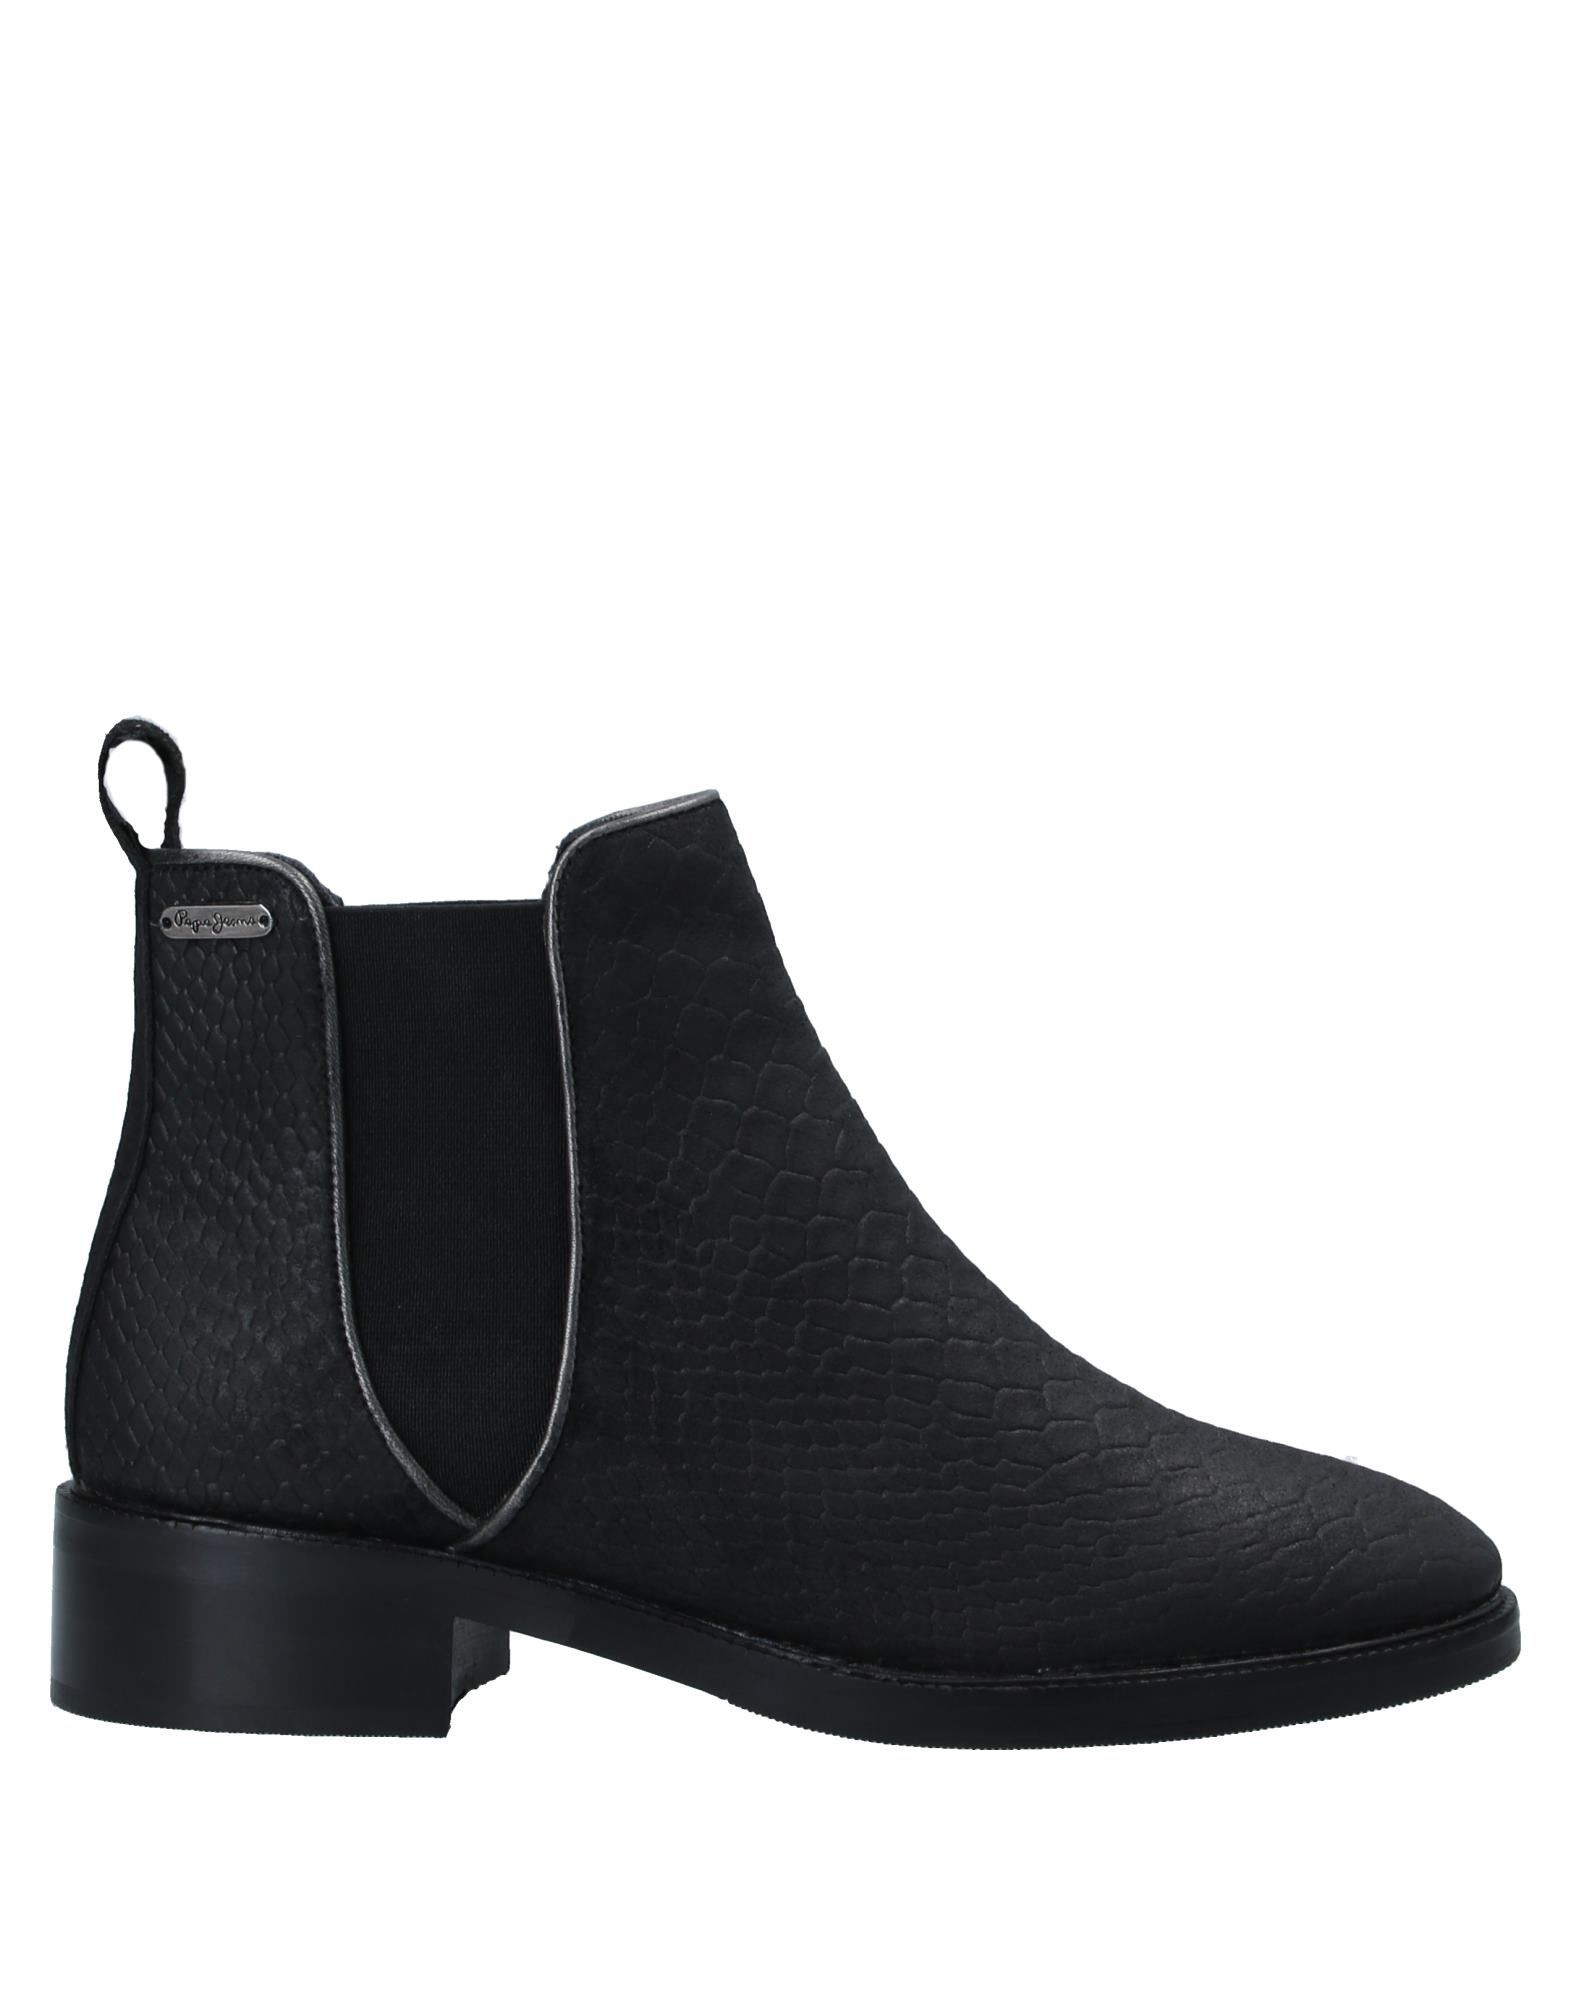 Pepe Jeans Black Leather Chelsea Boots